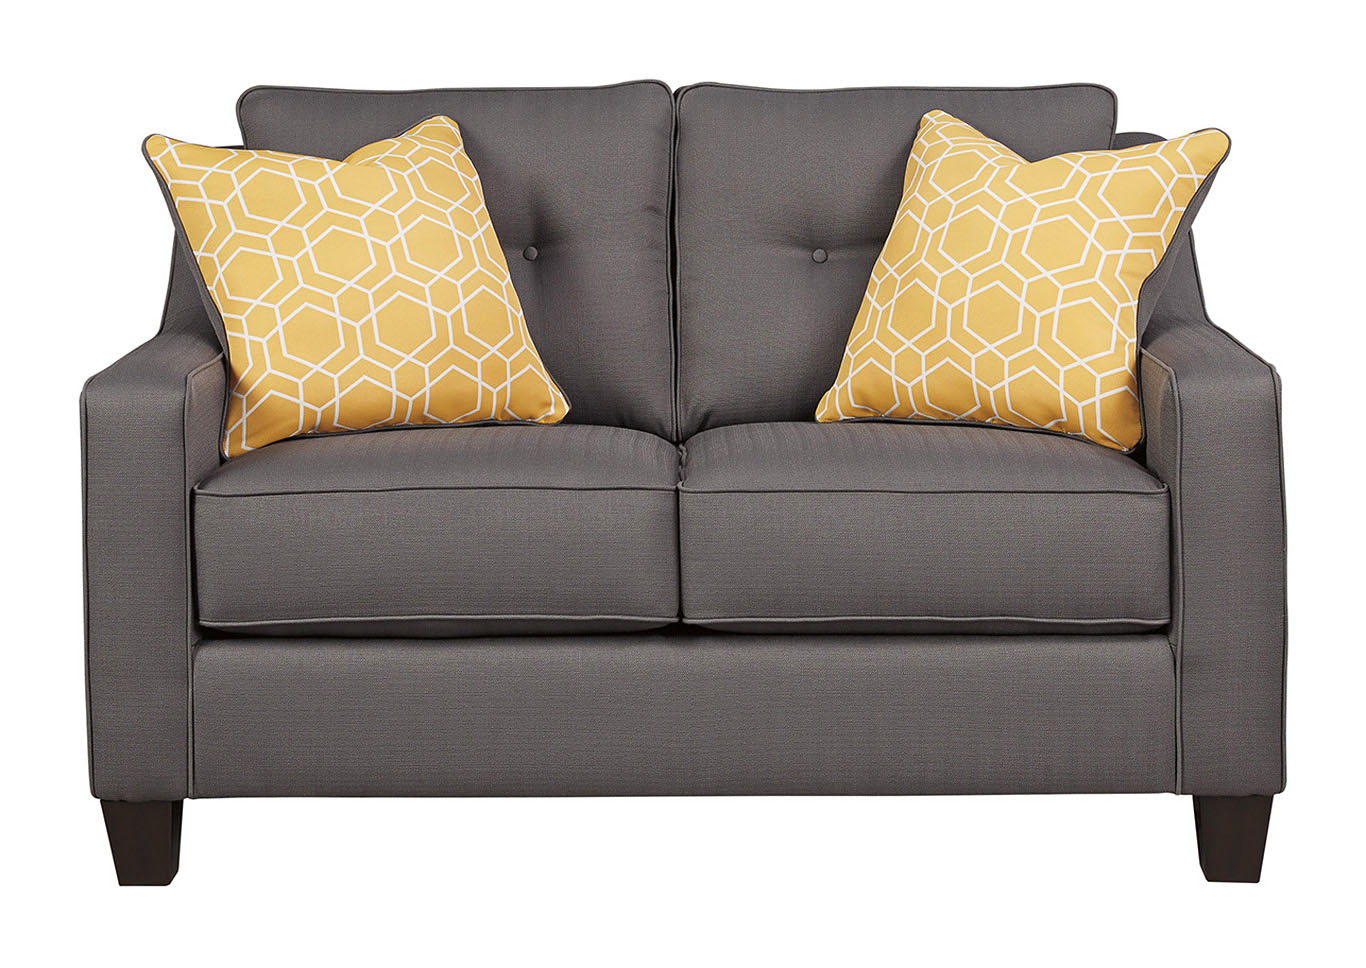 Awesome Ivan Smith Aldie Nuvella Gray Loveseat Home Interior And Landscaping Ologienasavecom